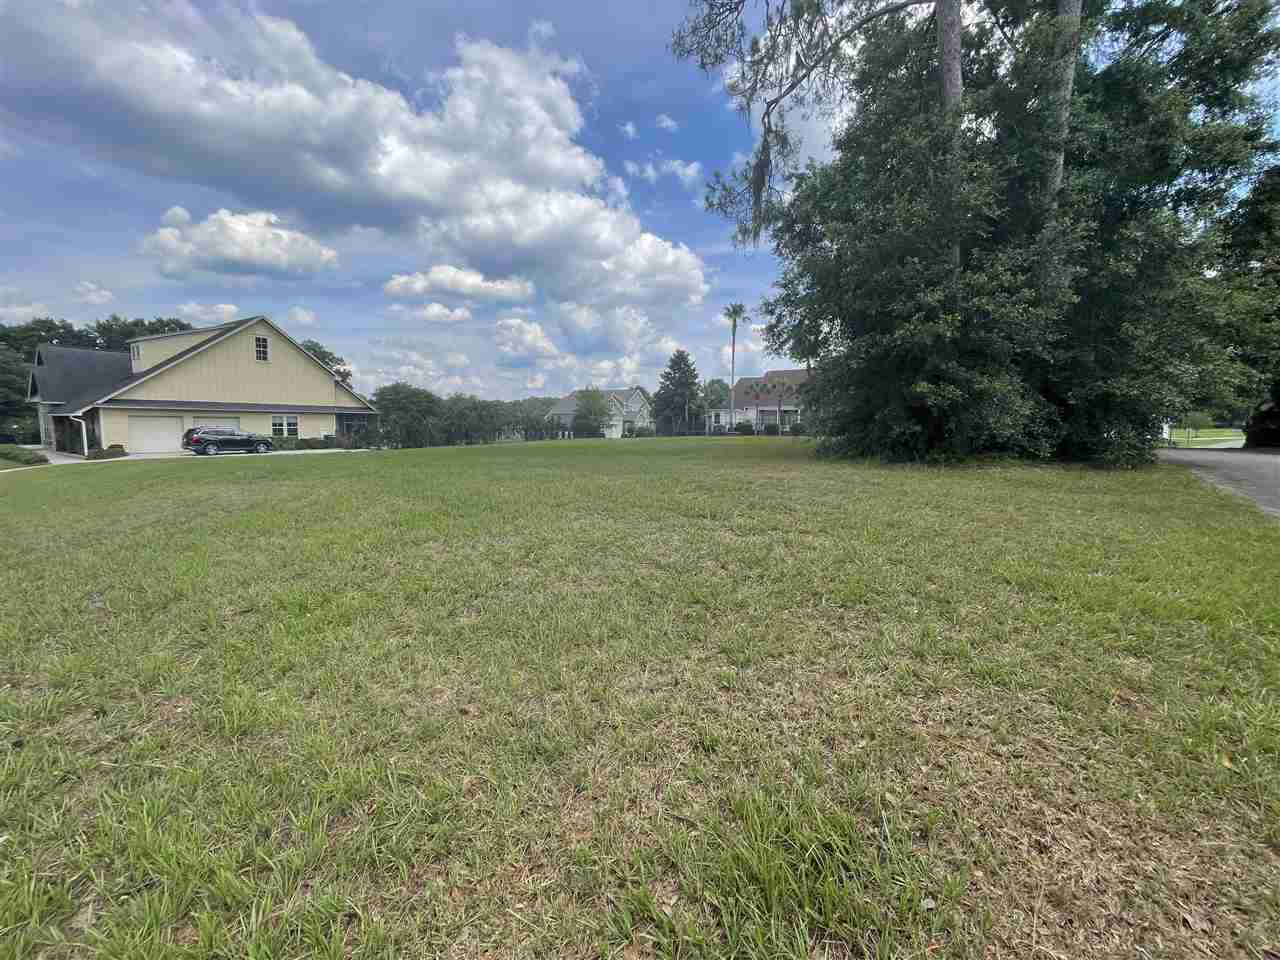 Half acre lot in beautiful SouthWood! Look no further for the perfect place to build your dream home. Quick access to Biltmore Ave and in the proximity to the community center. Enjoy all the amenities of SouthWood including miles of nature trails, community garden, tennis courts, community pool, scenic views. Don't miss this great opportunity!